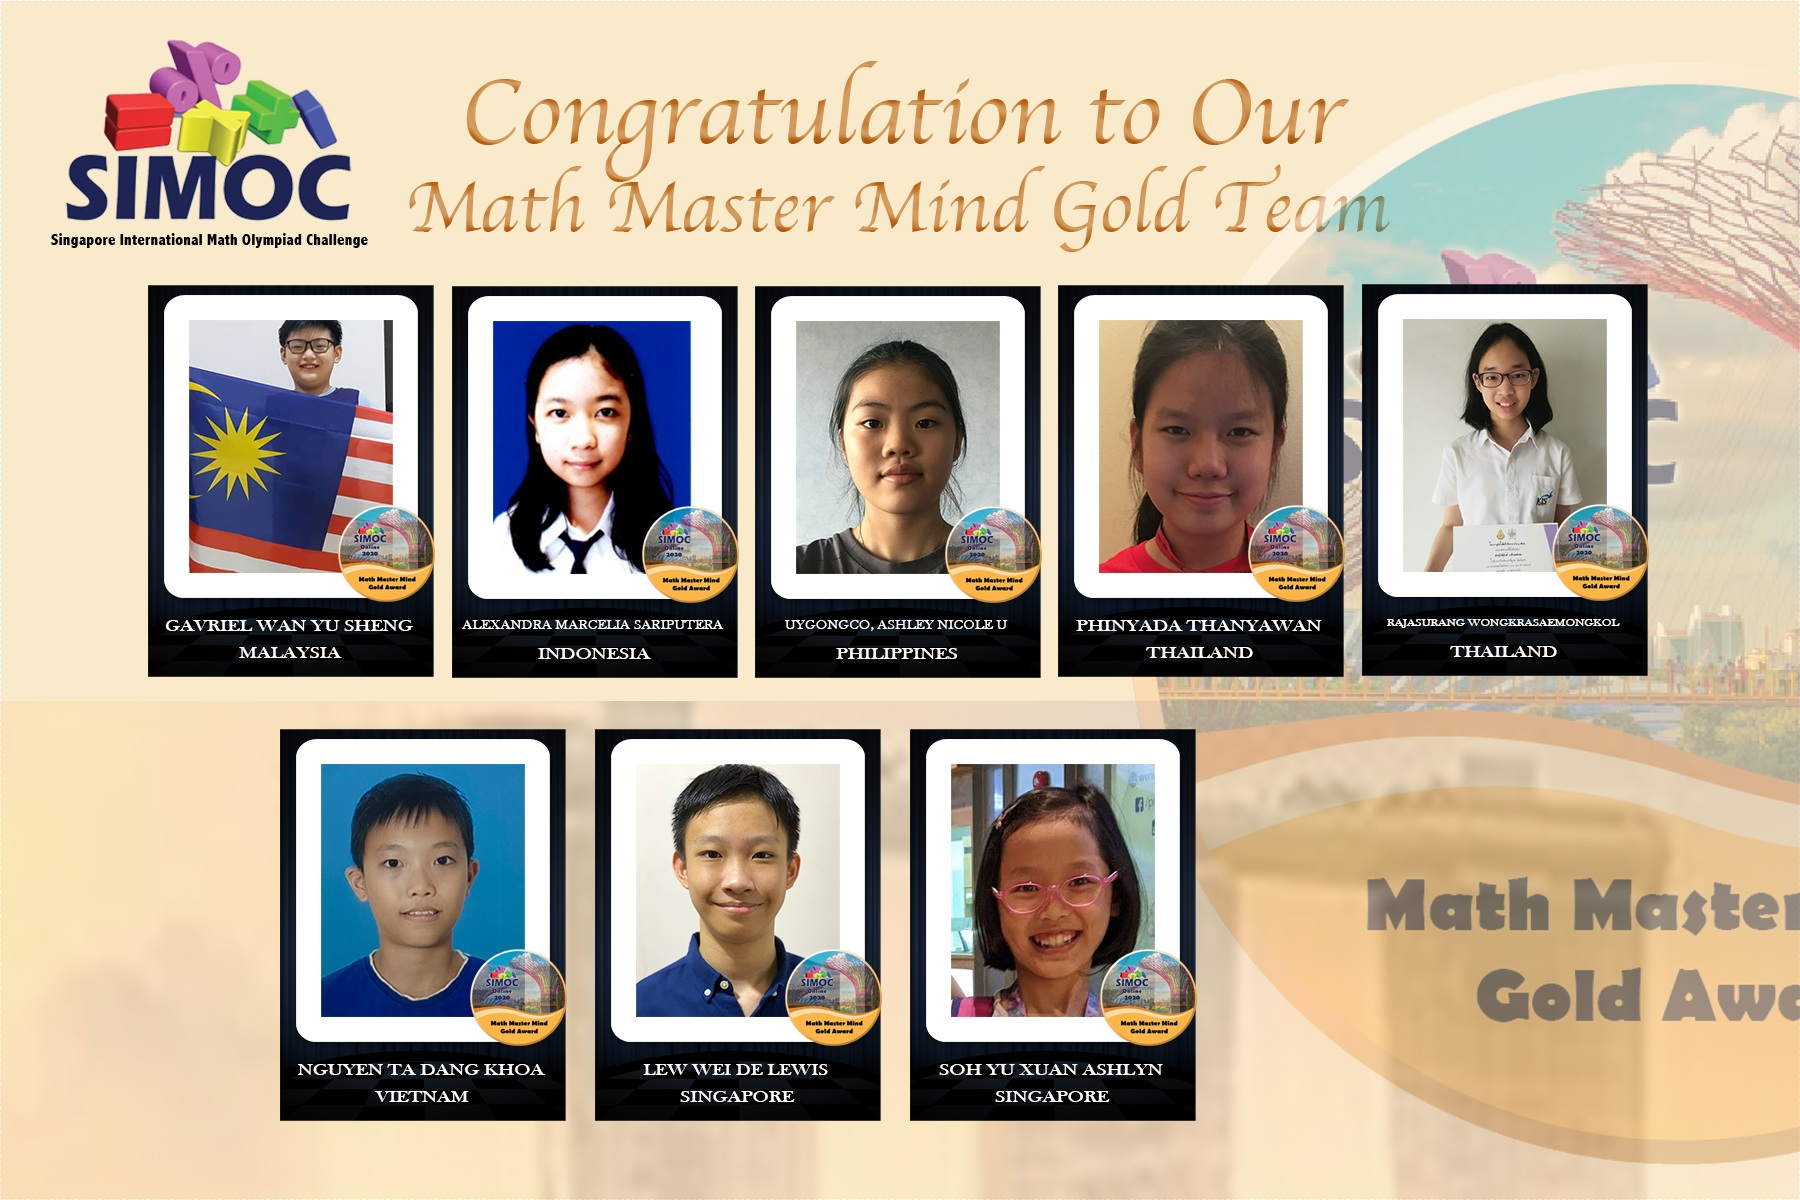 SIMOC-Math-Master-Mind-Middle-division-Gold-1